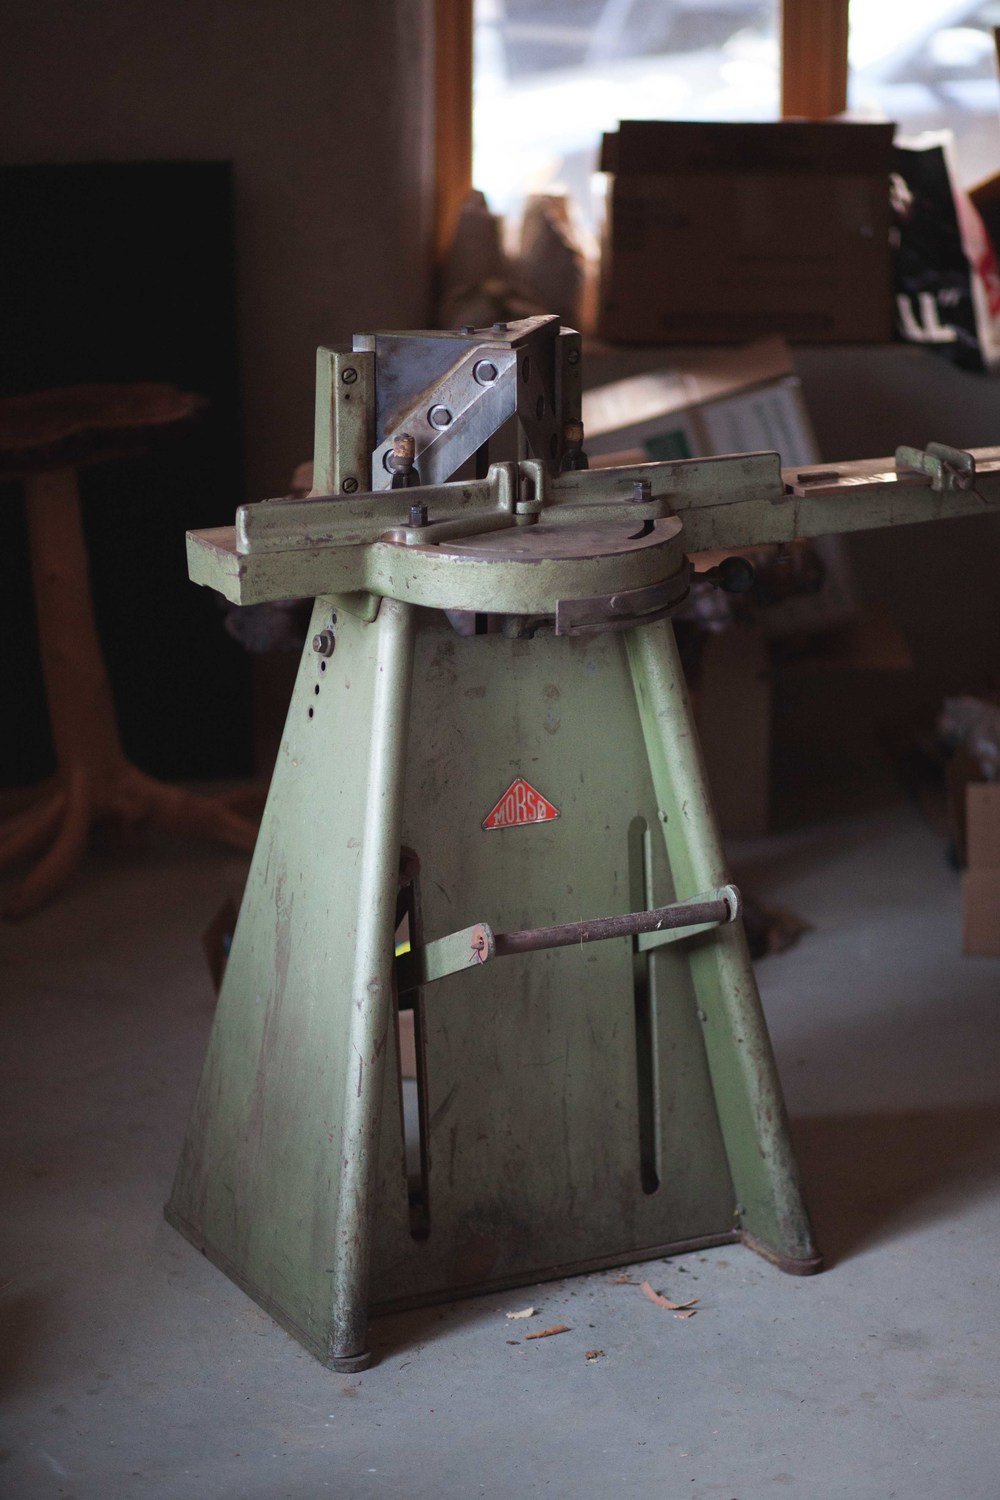 Older Morso Guillotine Trimmer Cutter